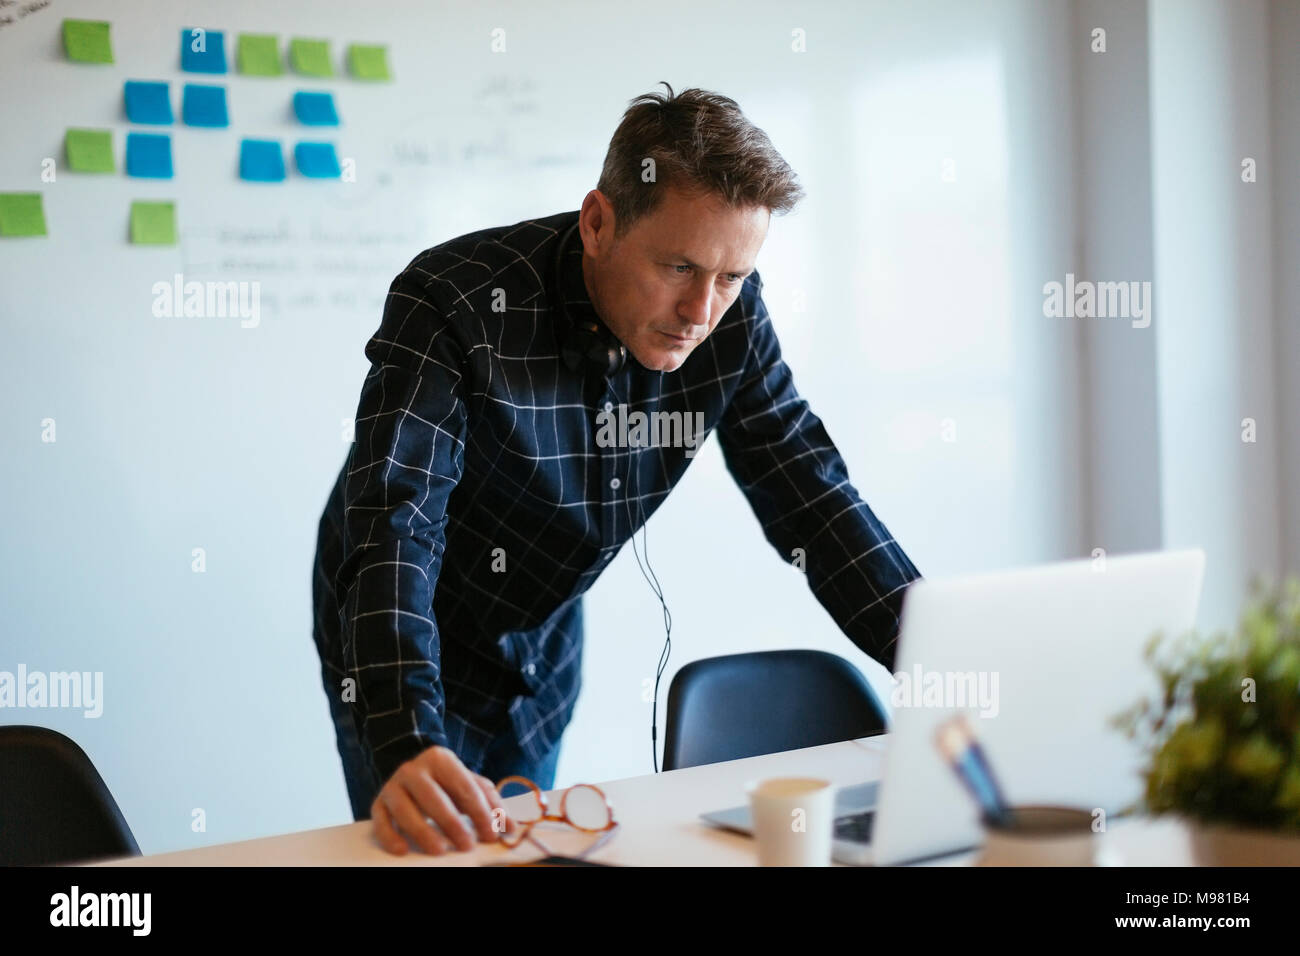 Businessman standing at desk in office looking at laptop - Stock Image